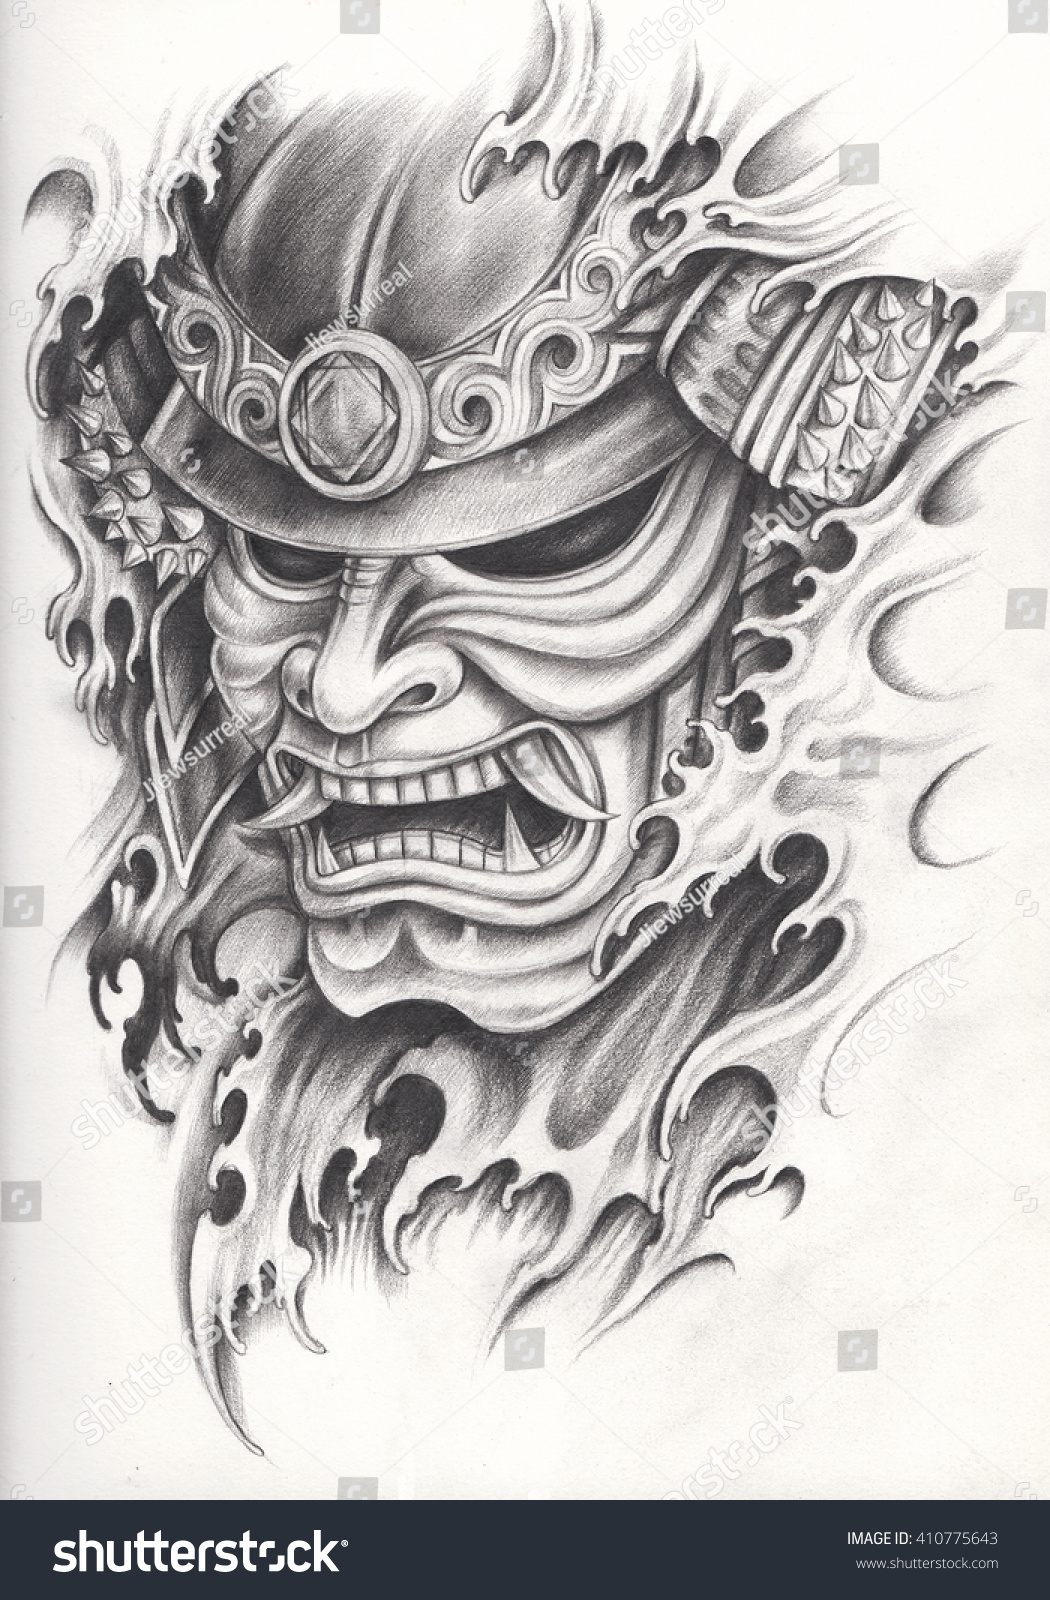 Samurai warrior tattoo designhand pencil drawing stock for Drawing tattoos on paper